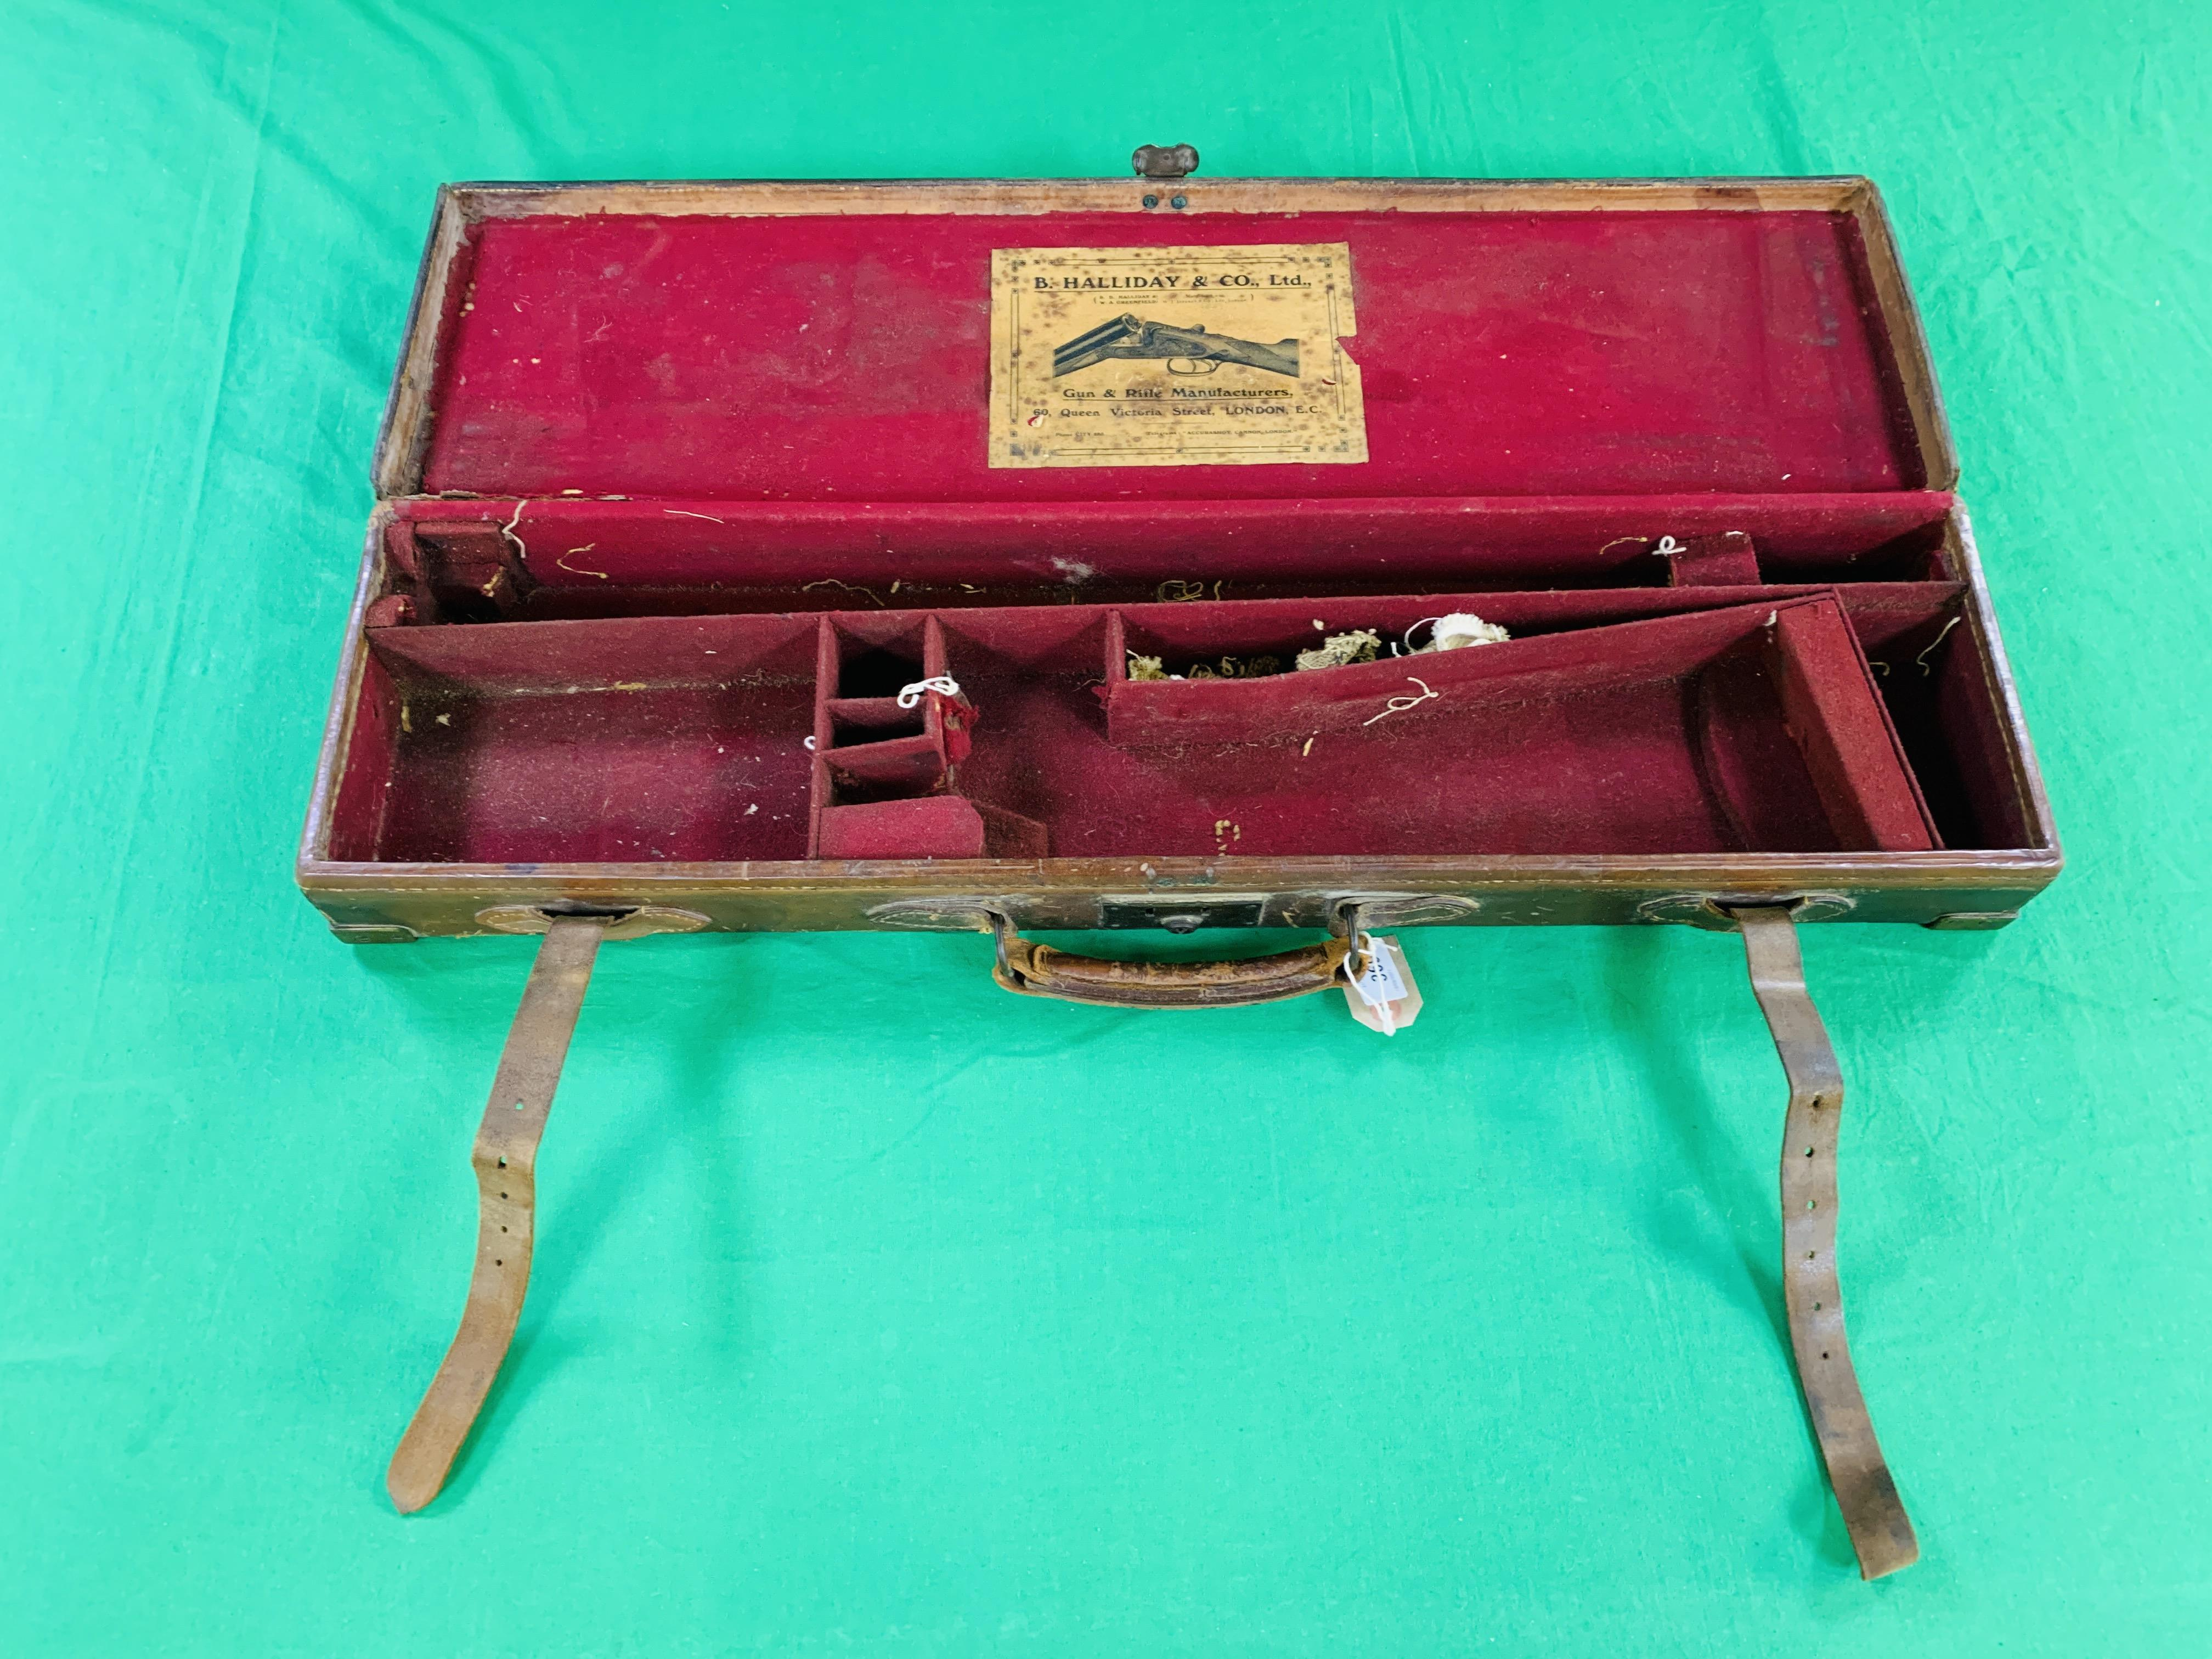 """OAK AND LEATHER 28 / 30"""" SIDE BY SIDE GUN CASE WITH B. HALLIDAY AND CO. LTD OF LONDON CASE LABEL."""